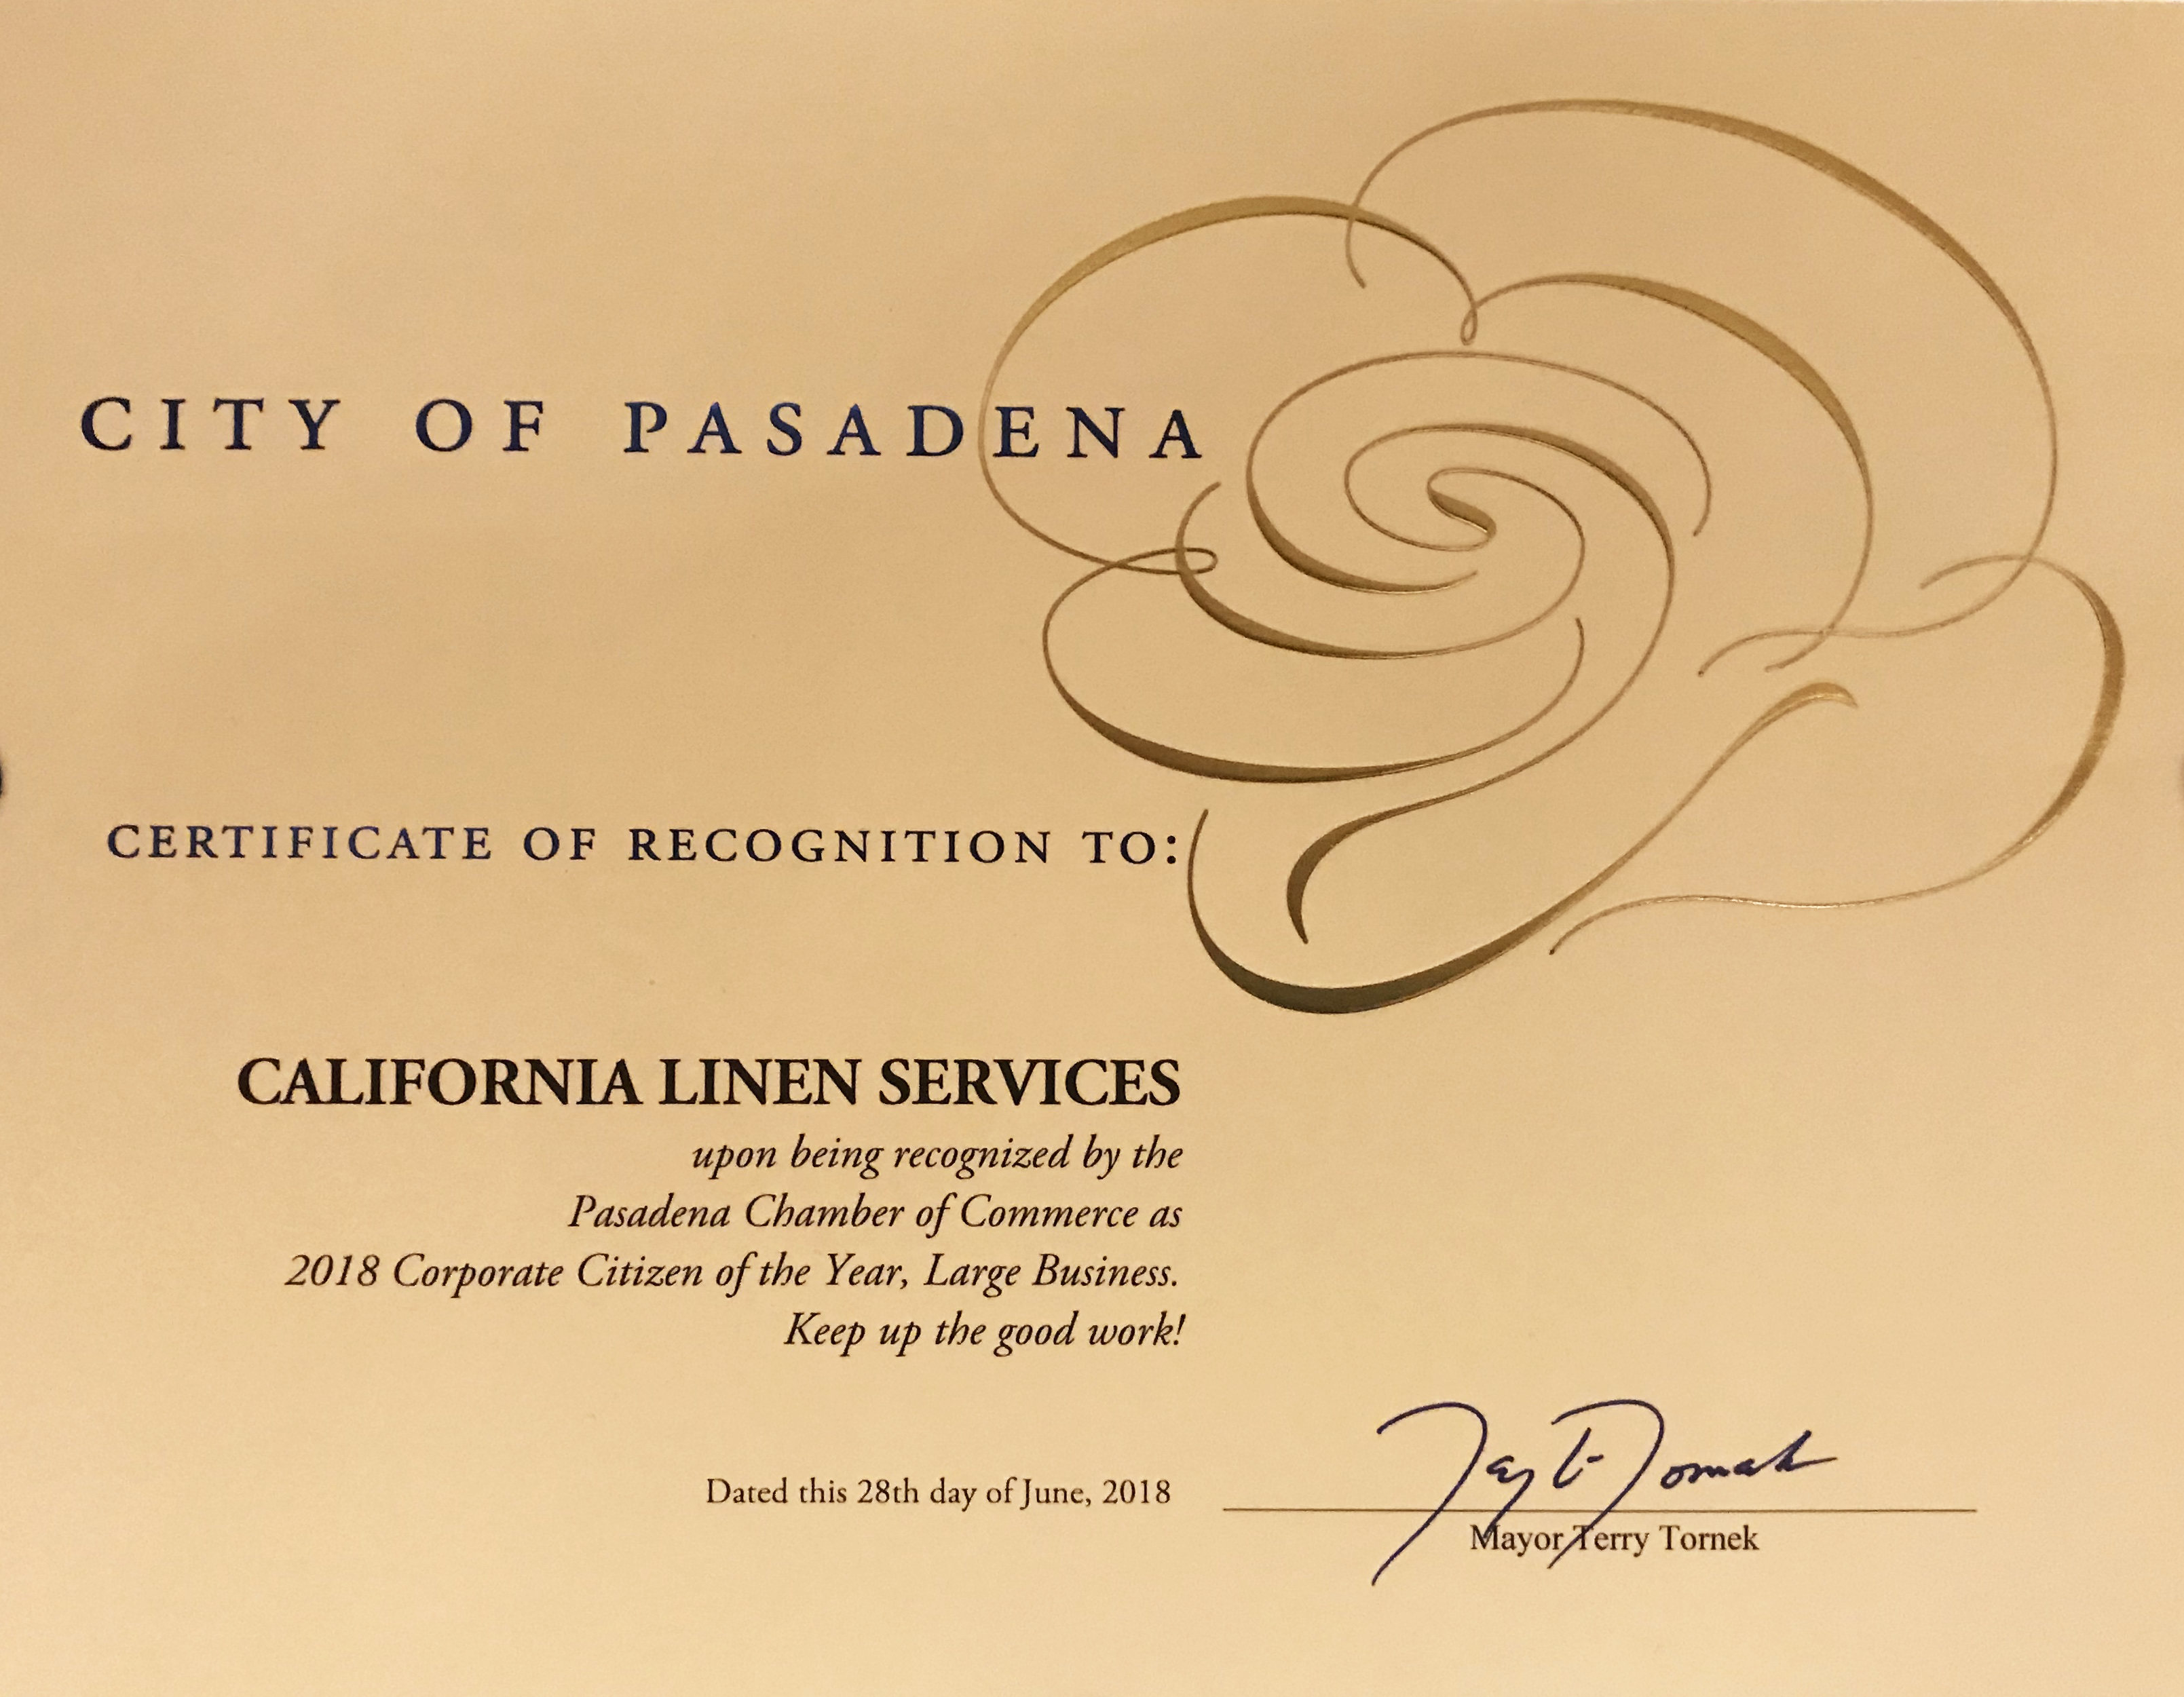 California Linen Services received the City of Pasadena's Corporate Citizen of the Year Award.